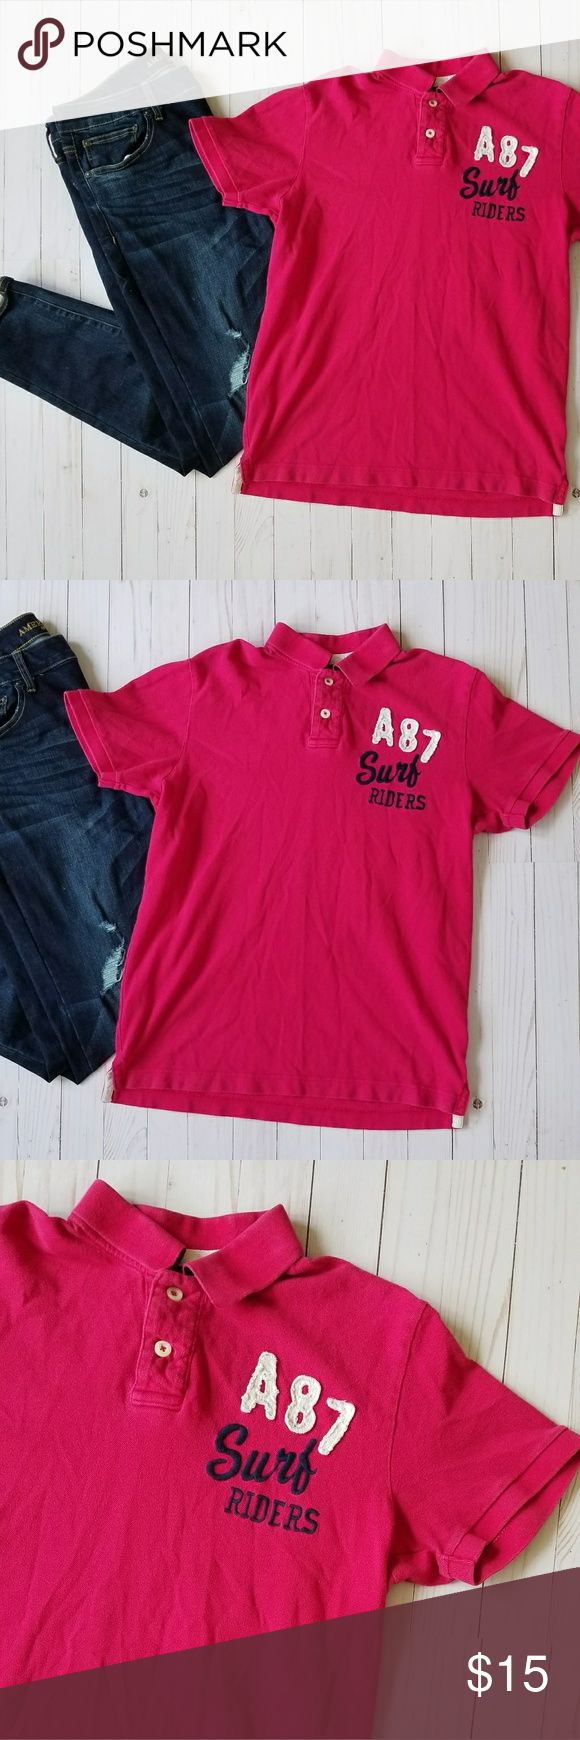 Aeropostale men's polo In good condition, a little faded/worn out. Aeropostale Shirts Polos